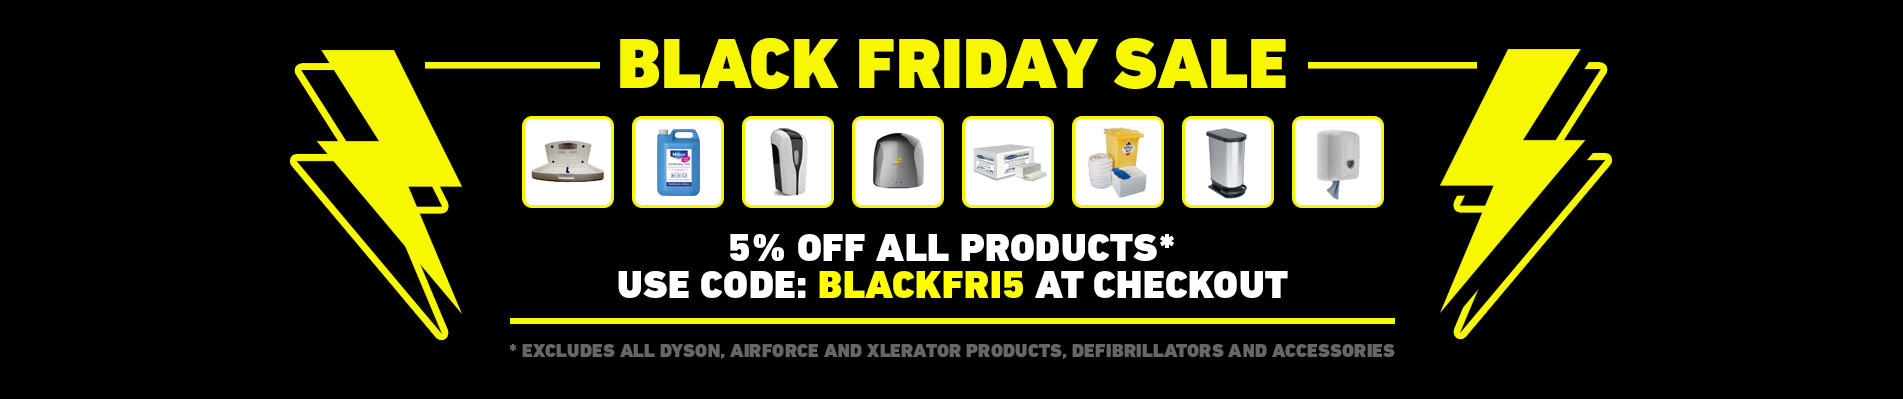 BLACK FRIDAY SALE - 5% OFF ALL PRODUCTS